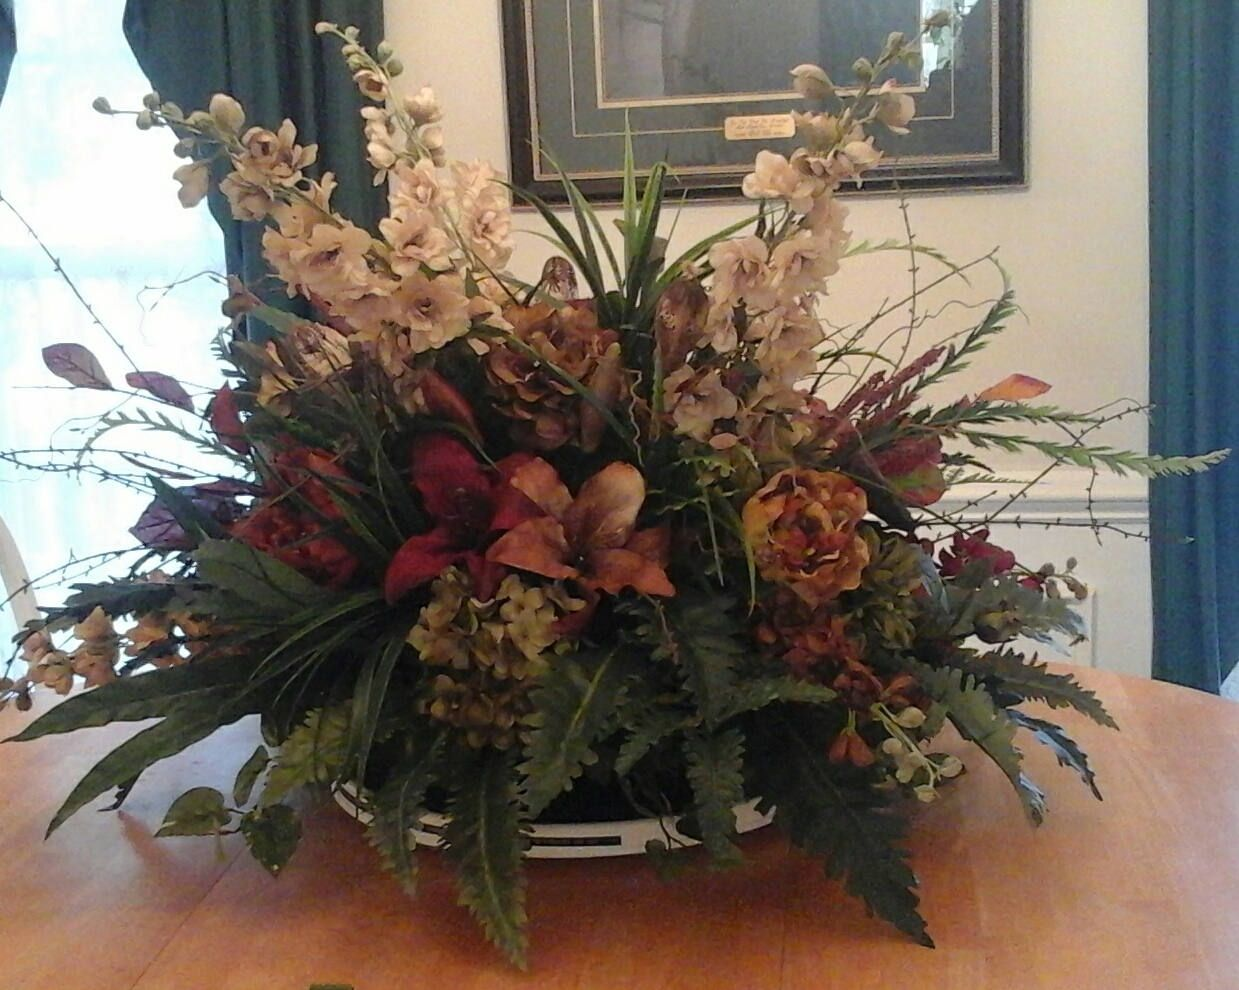 Floral Arrangement Extra Large Table Centerpiece Shipping Included Elegant Luxury Mo Table Flower Arrangements Flower Arrangements Table Floral Arrangements